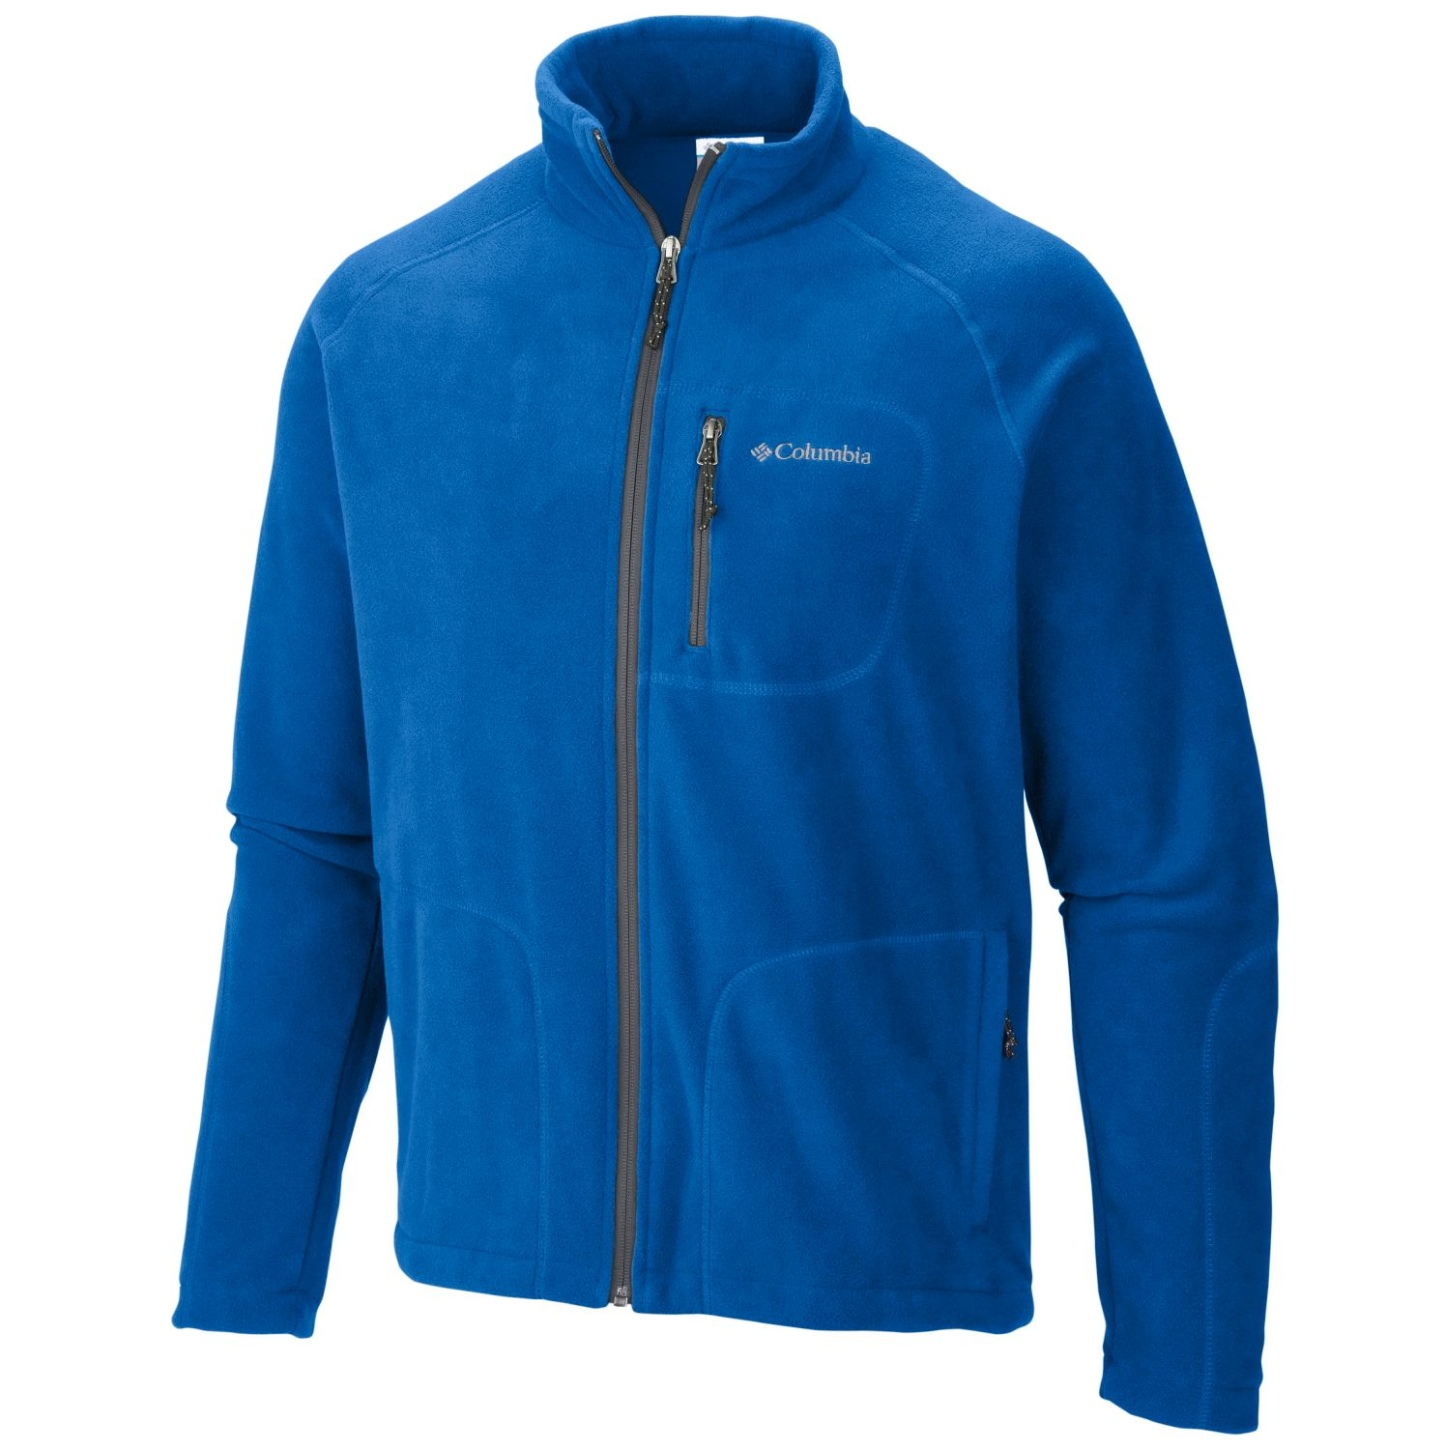 Columbia Men's Fast Trek II Full Zip Fleece Super Blue, Graphite-30